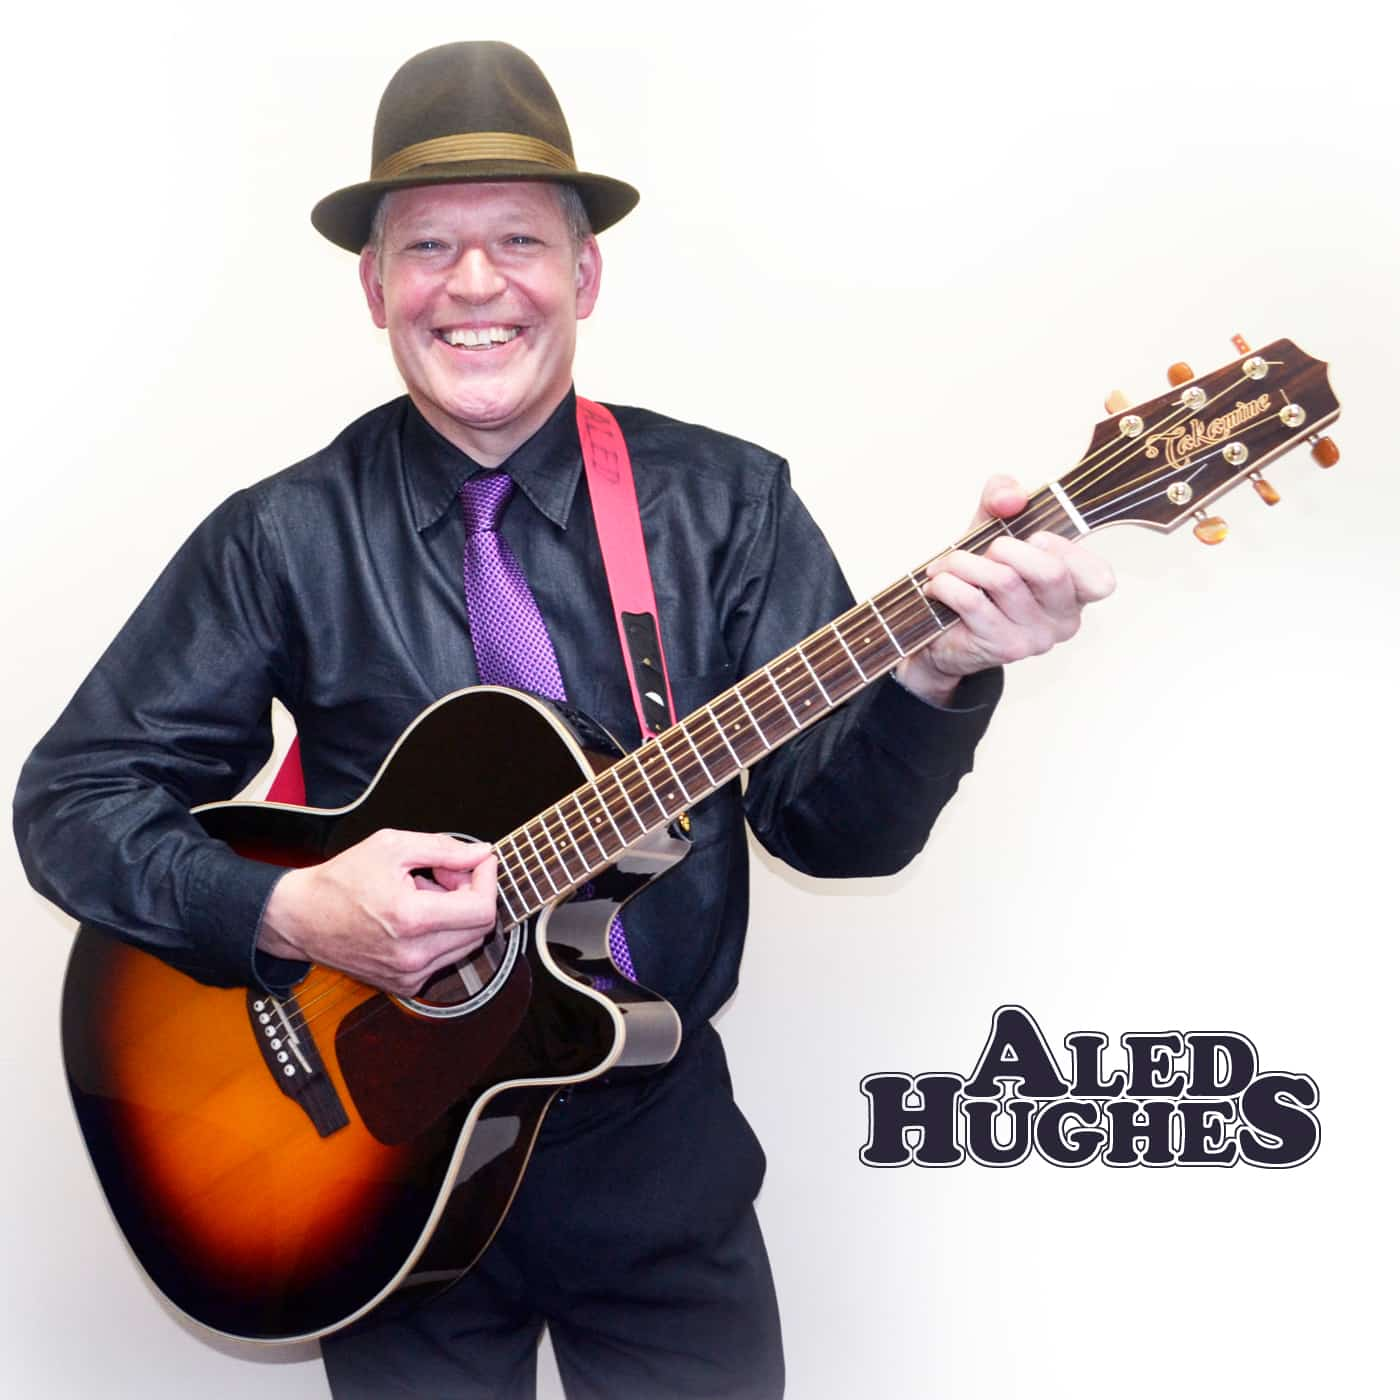 Aled Hughes Singer songwriter pop country folk